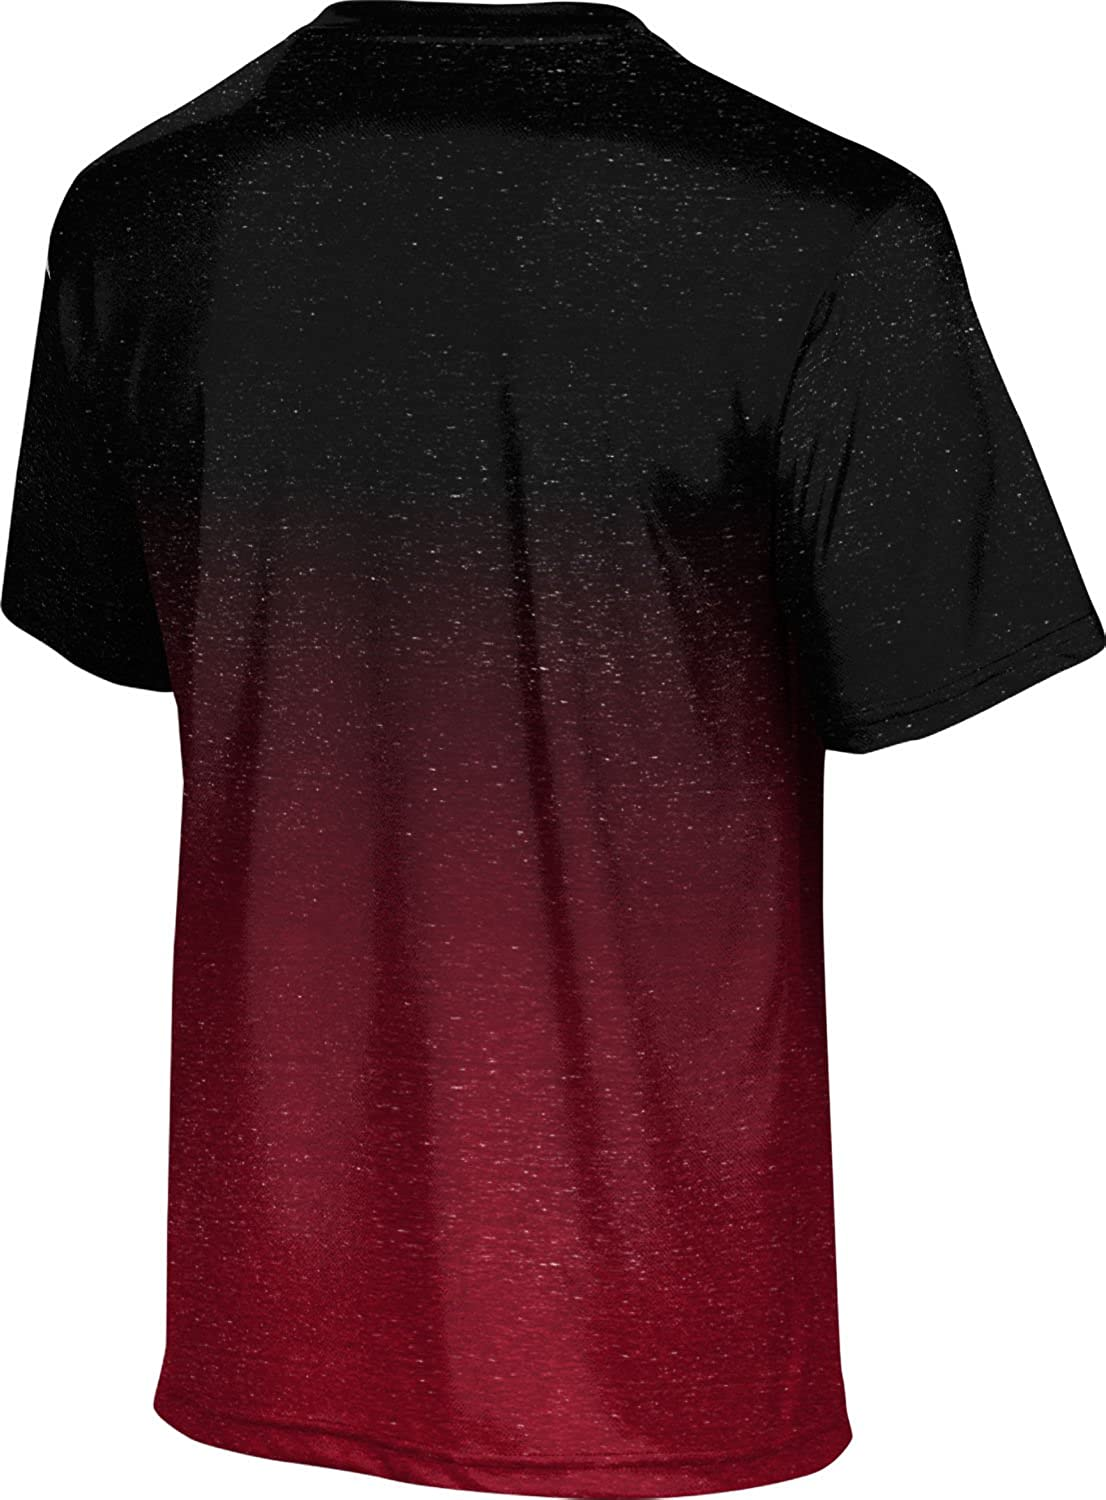 f7b41e0c7f6 ProSphere San Diego State University Men s T-Shirt - Ombre at Amazon Men s  Clothing store